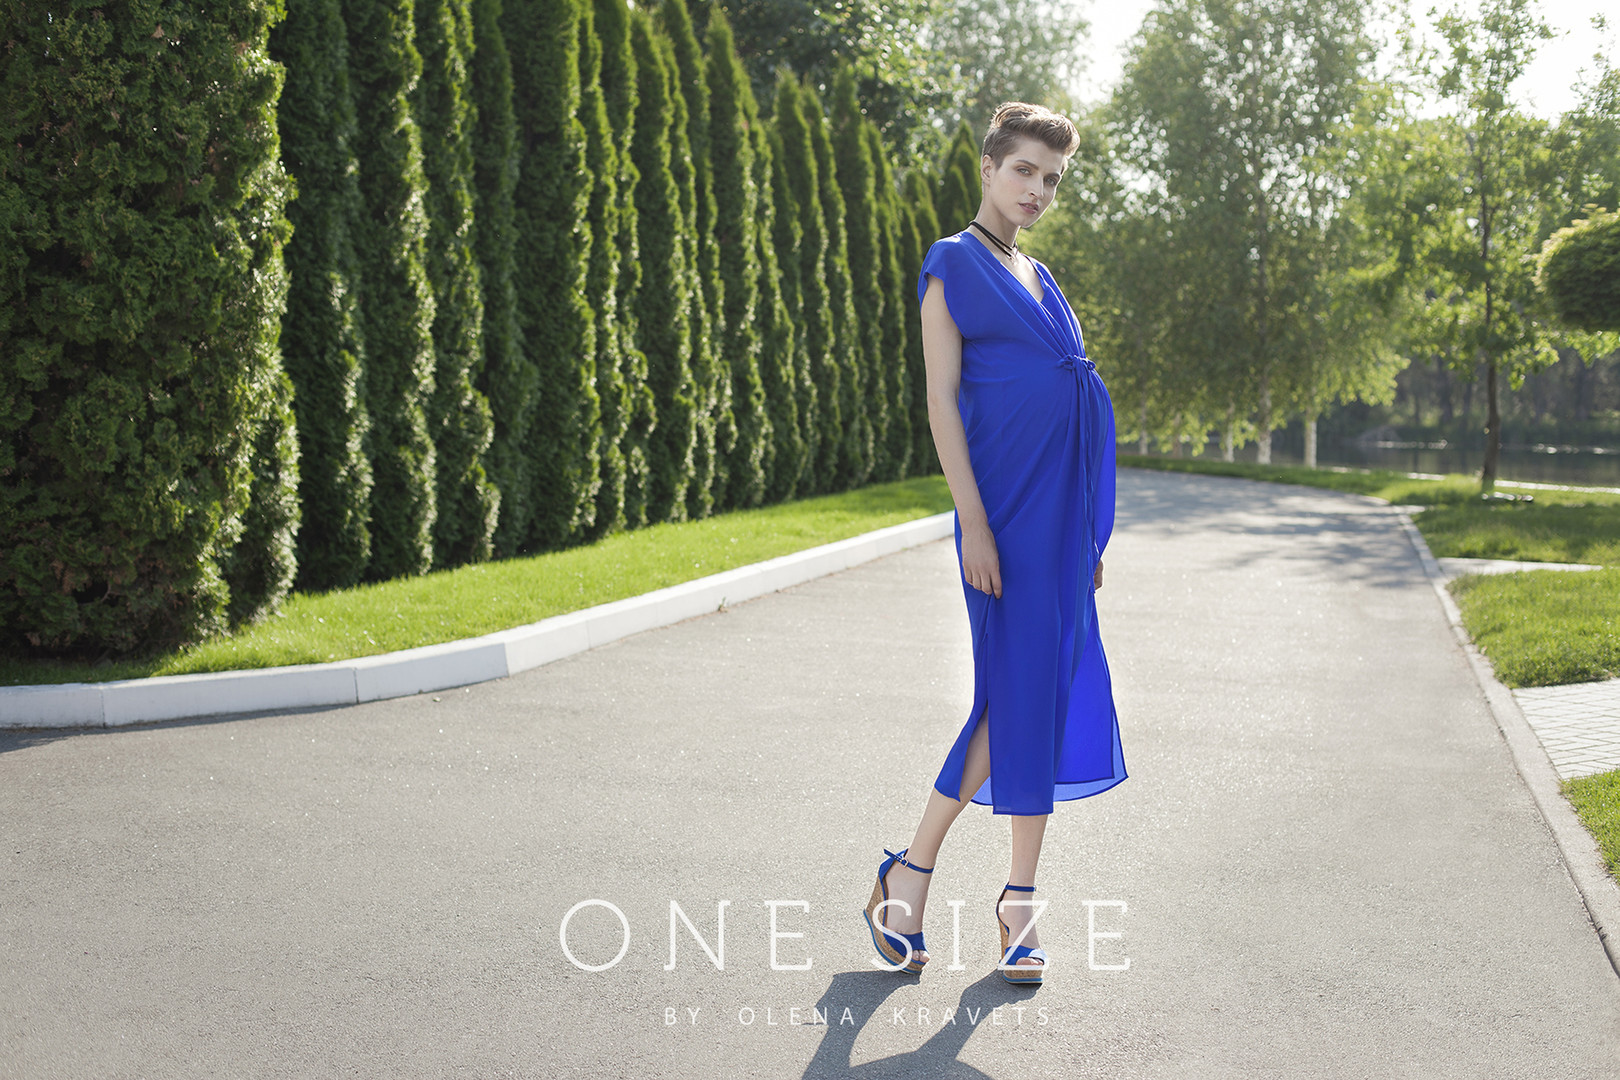 ONE SIZE by Olena Kravets | summer 2017 | Campaign